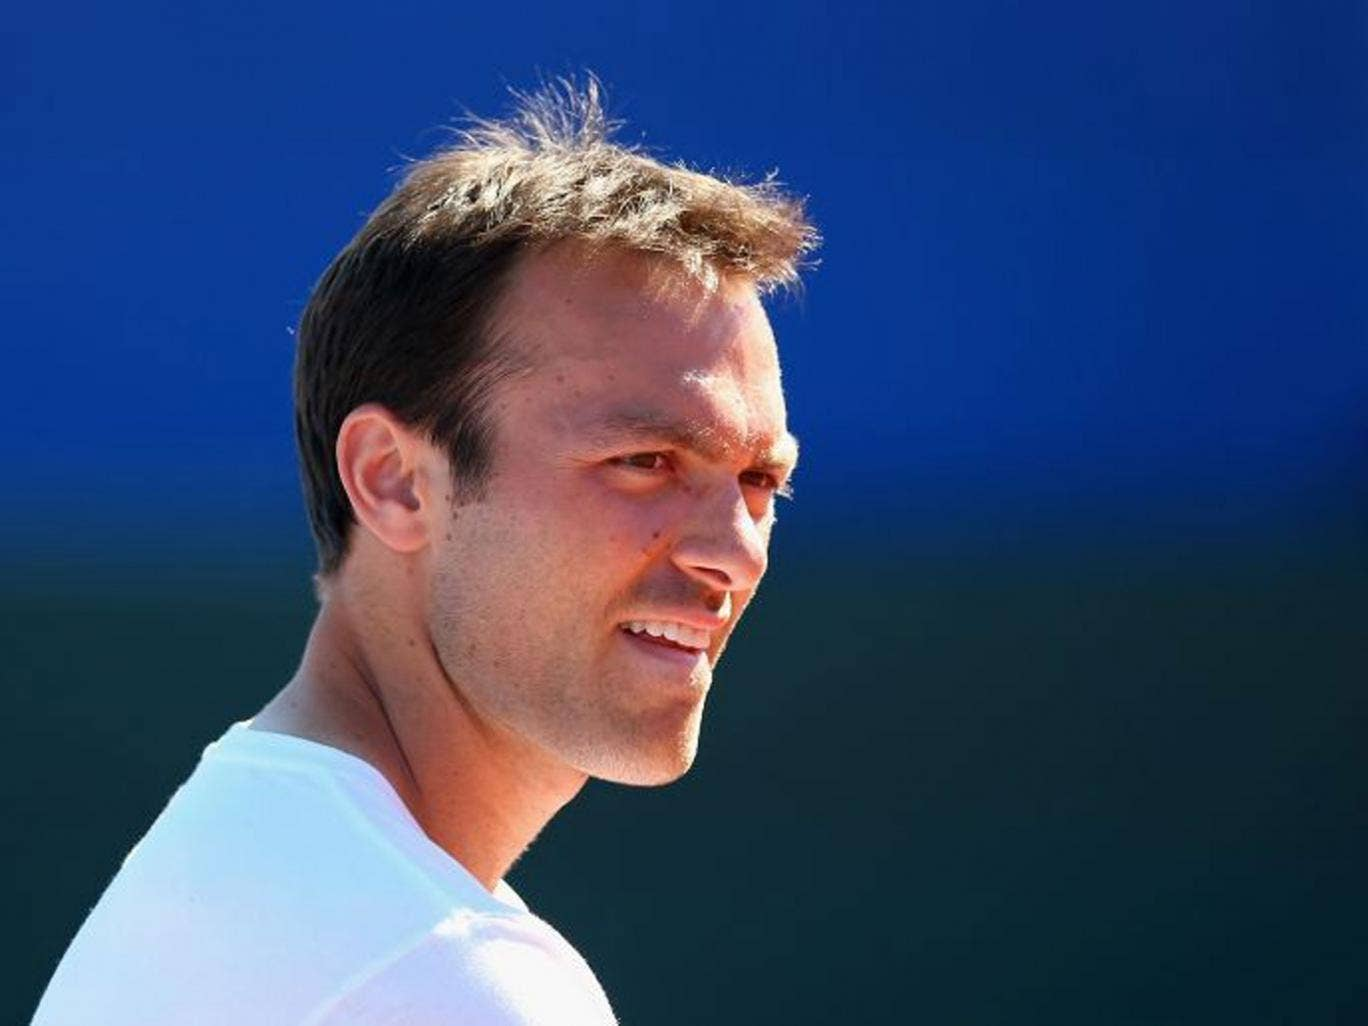 Strong return: Ross Hutchins was diagnosed with cancer a year ago